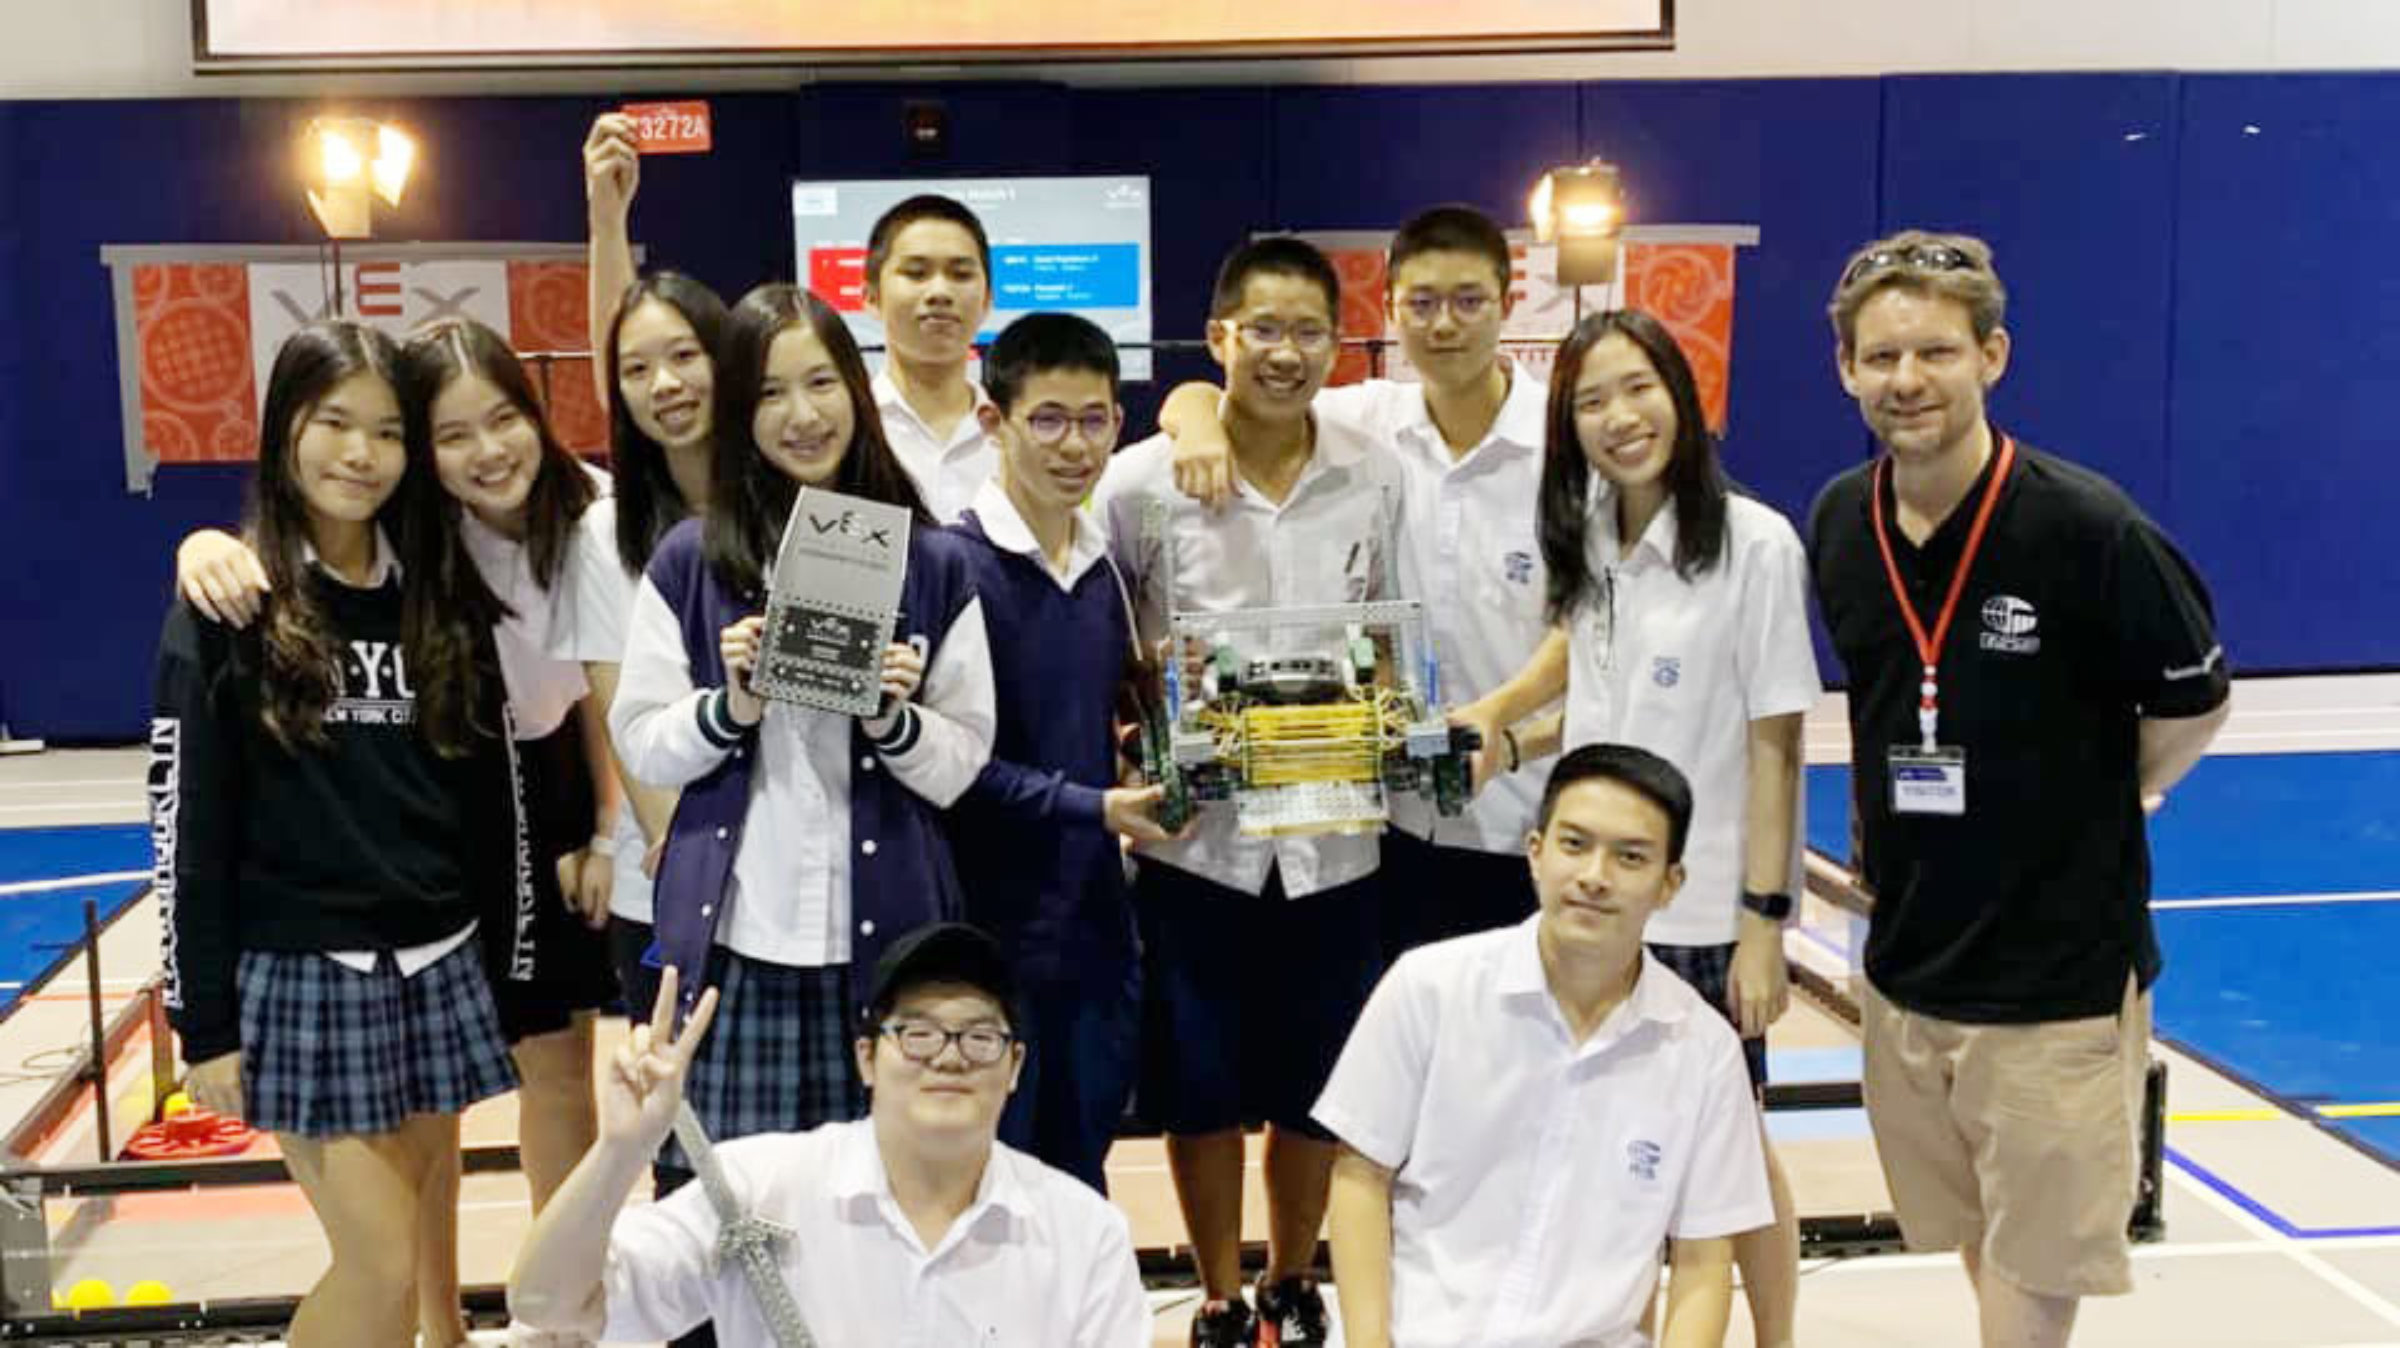 VEX Thailand Robotics Competition: RIS Finalists and Winners of the Design Award